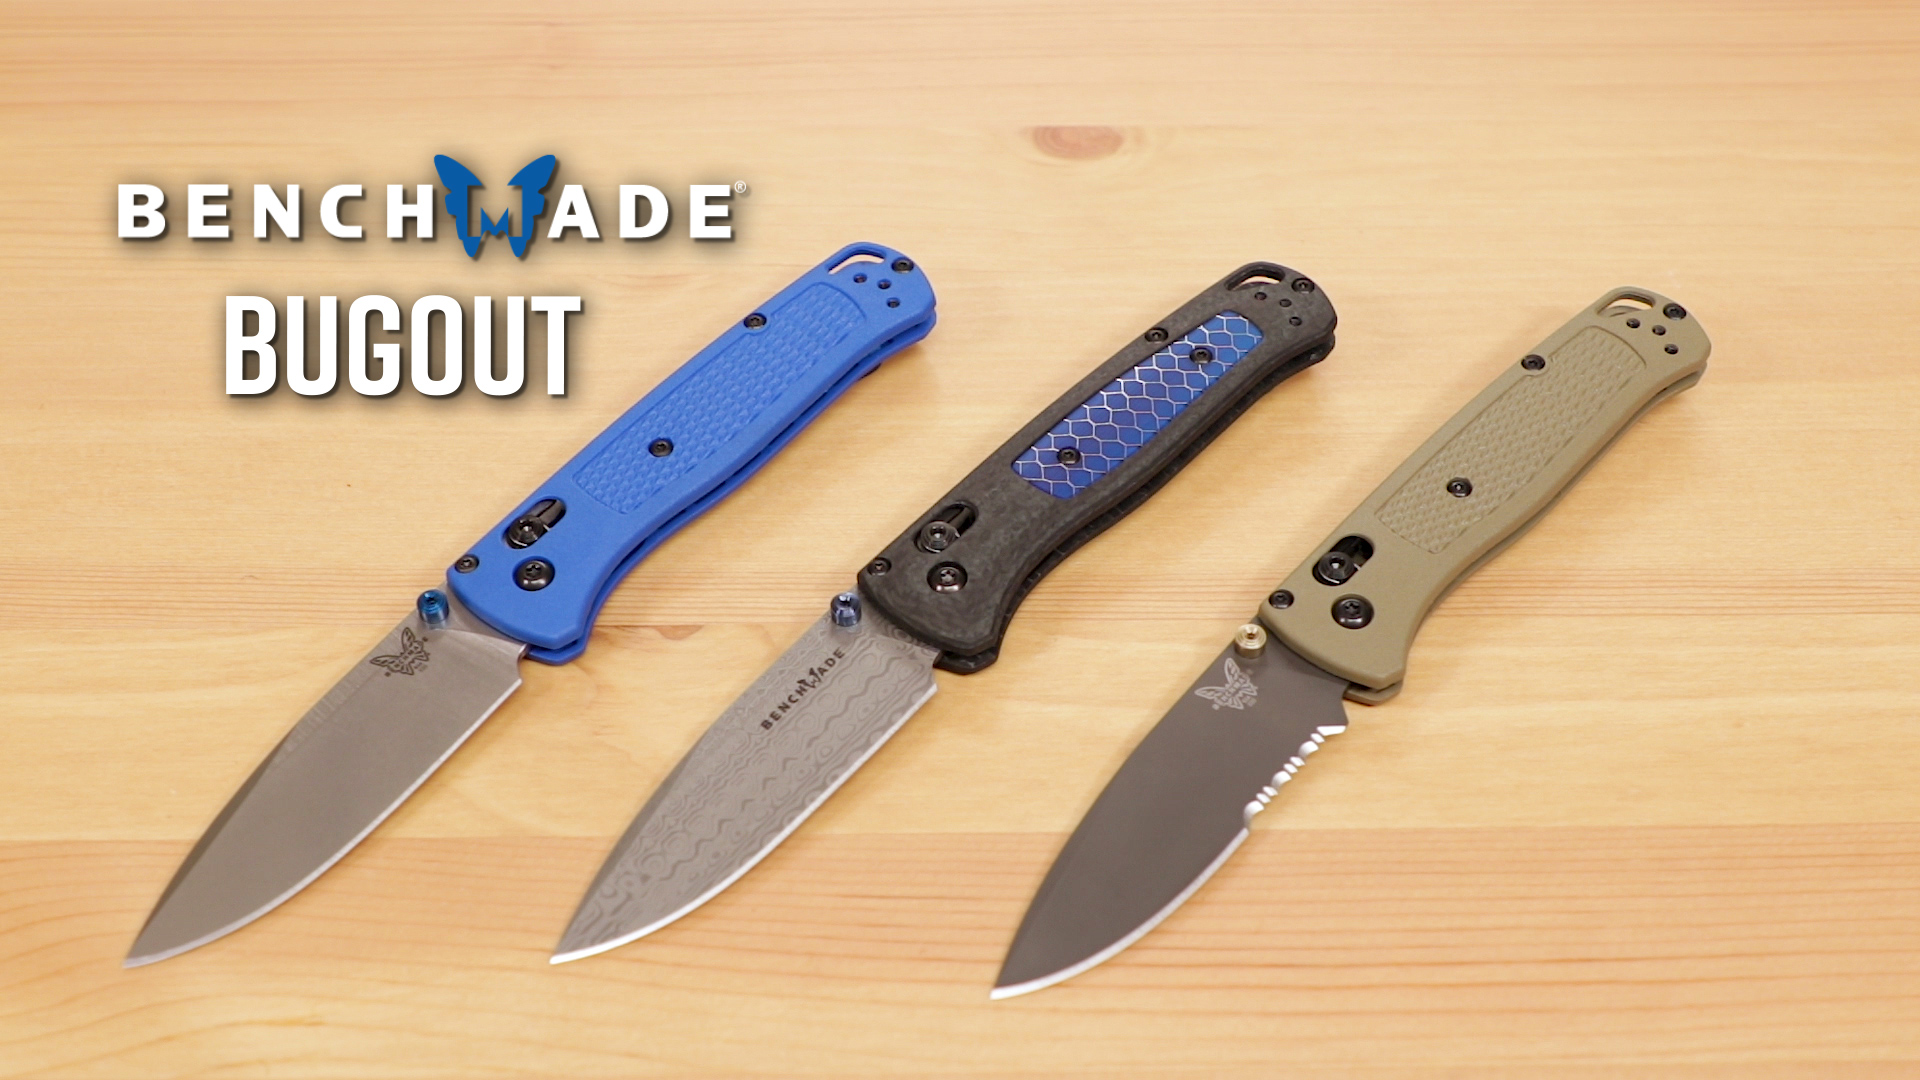 Benchmade Bugout 04-23.00_00_22_15.Still001